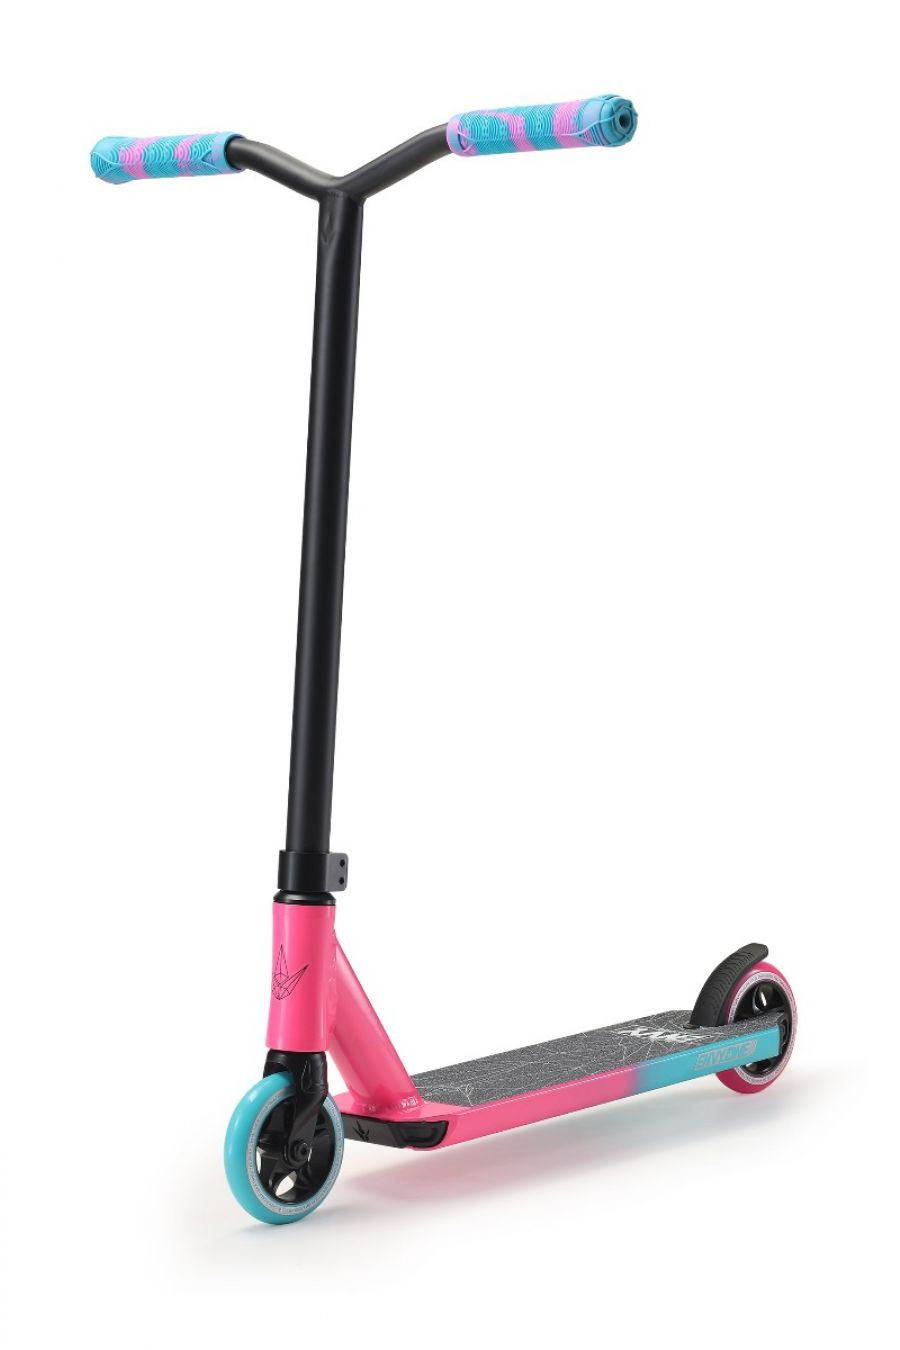 Envy One S3 Complete Scooter (Pink / Teal)